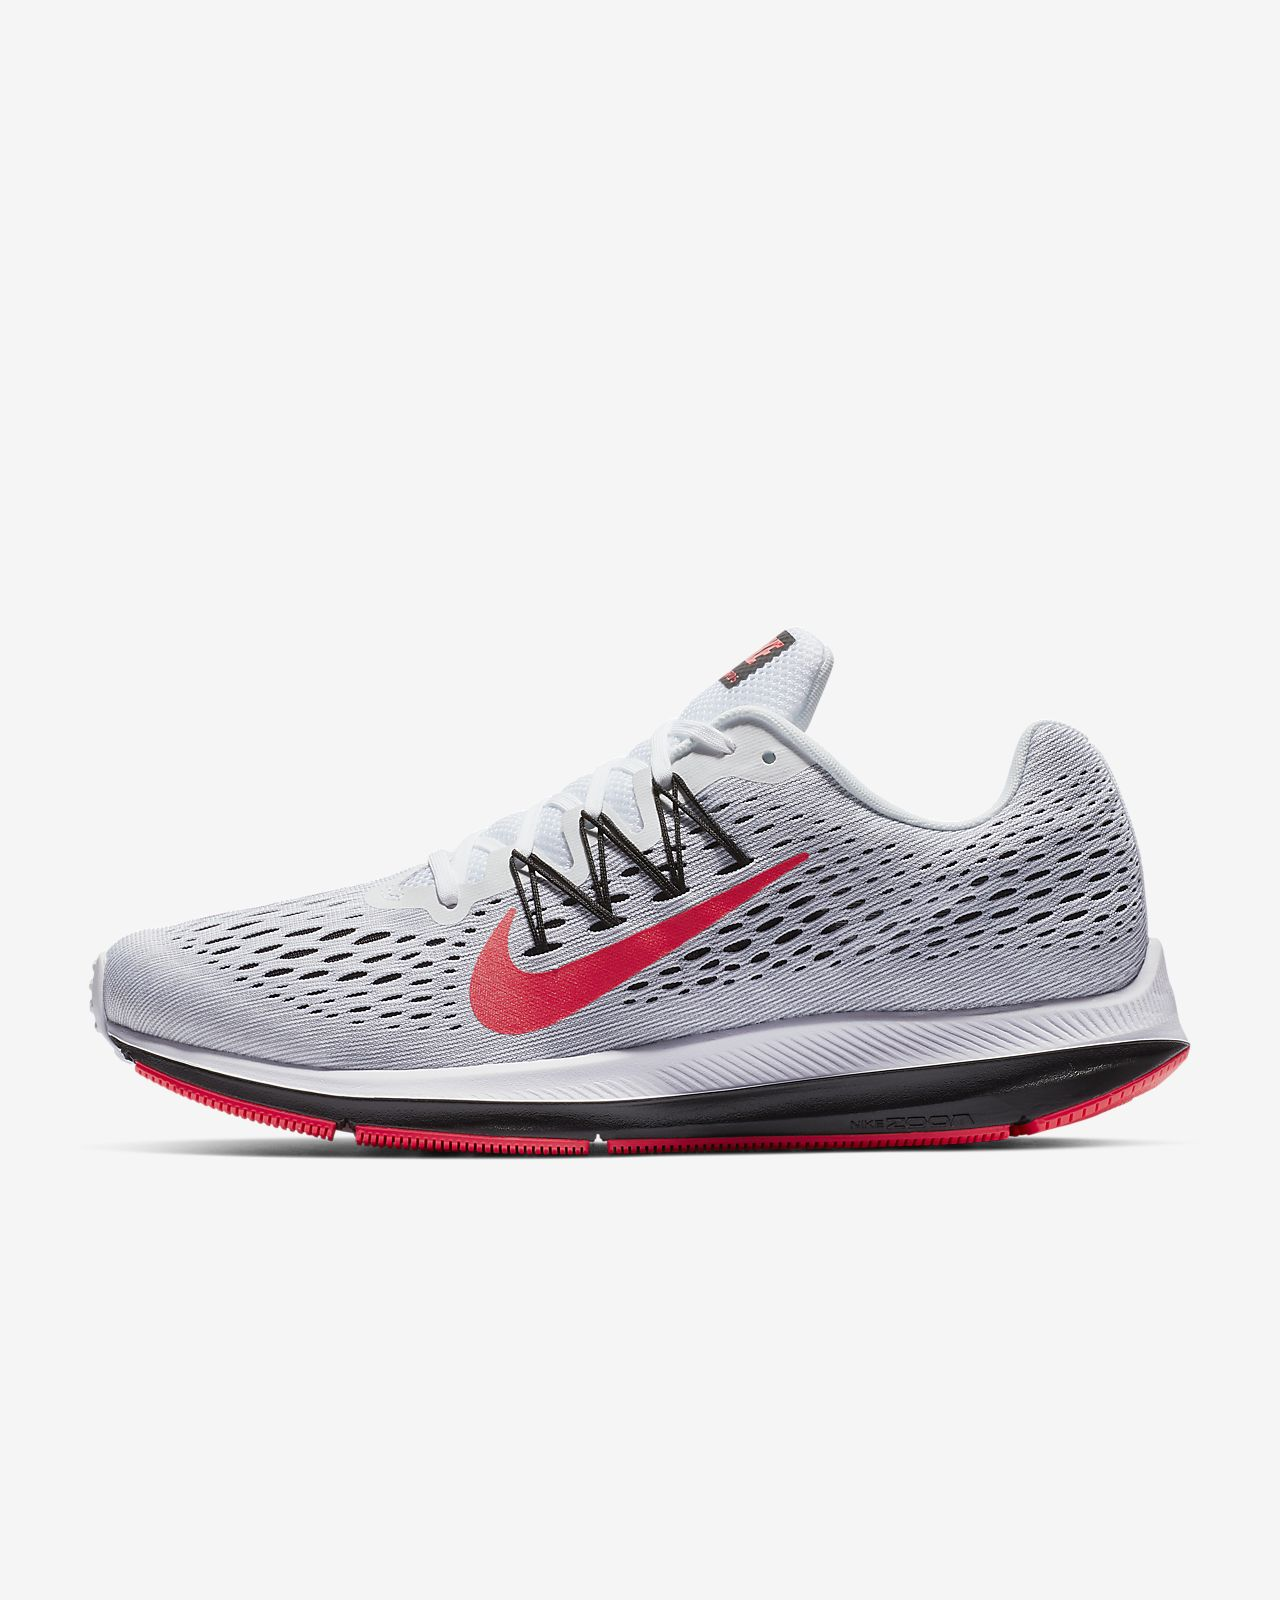 Chaussure de running Nike Air Zoom Winflo 5 pour Homme